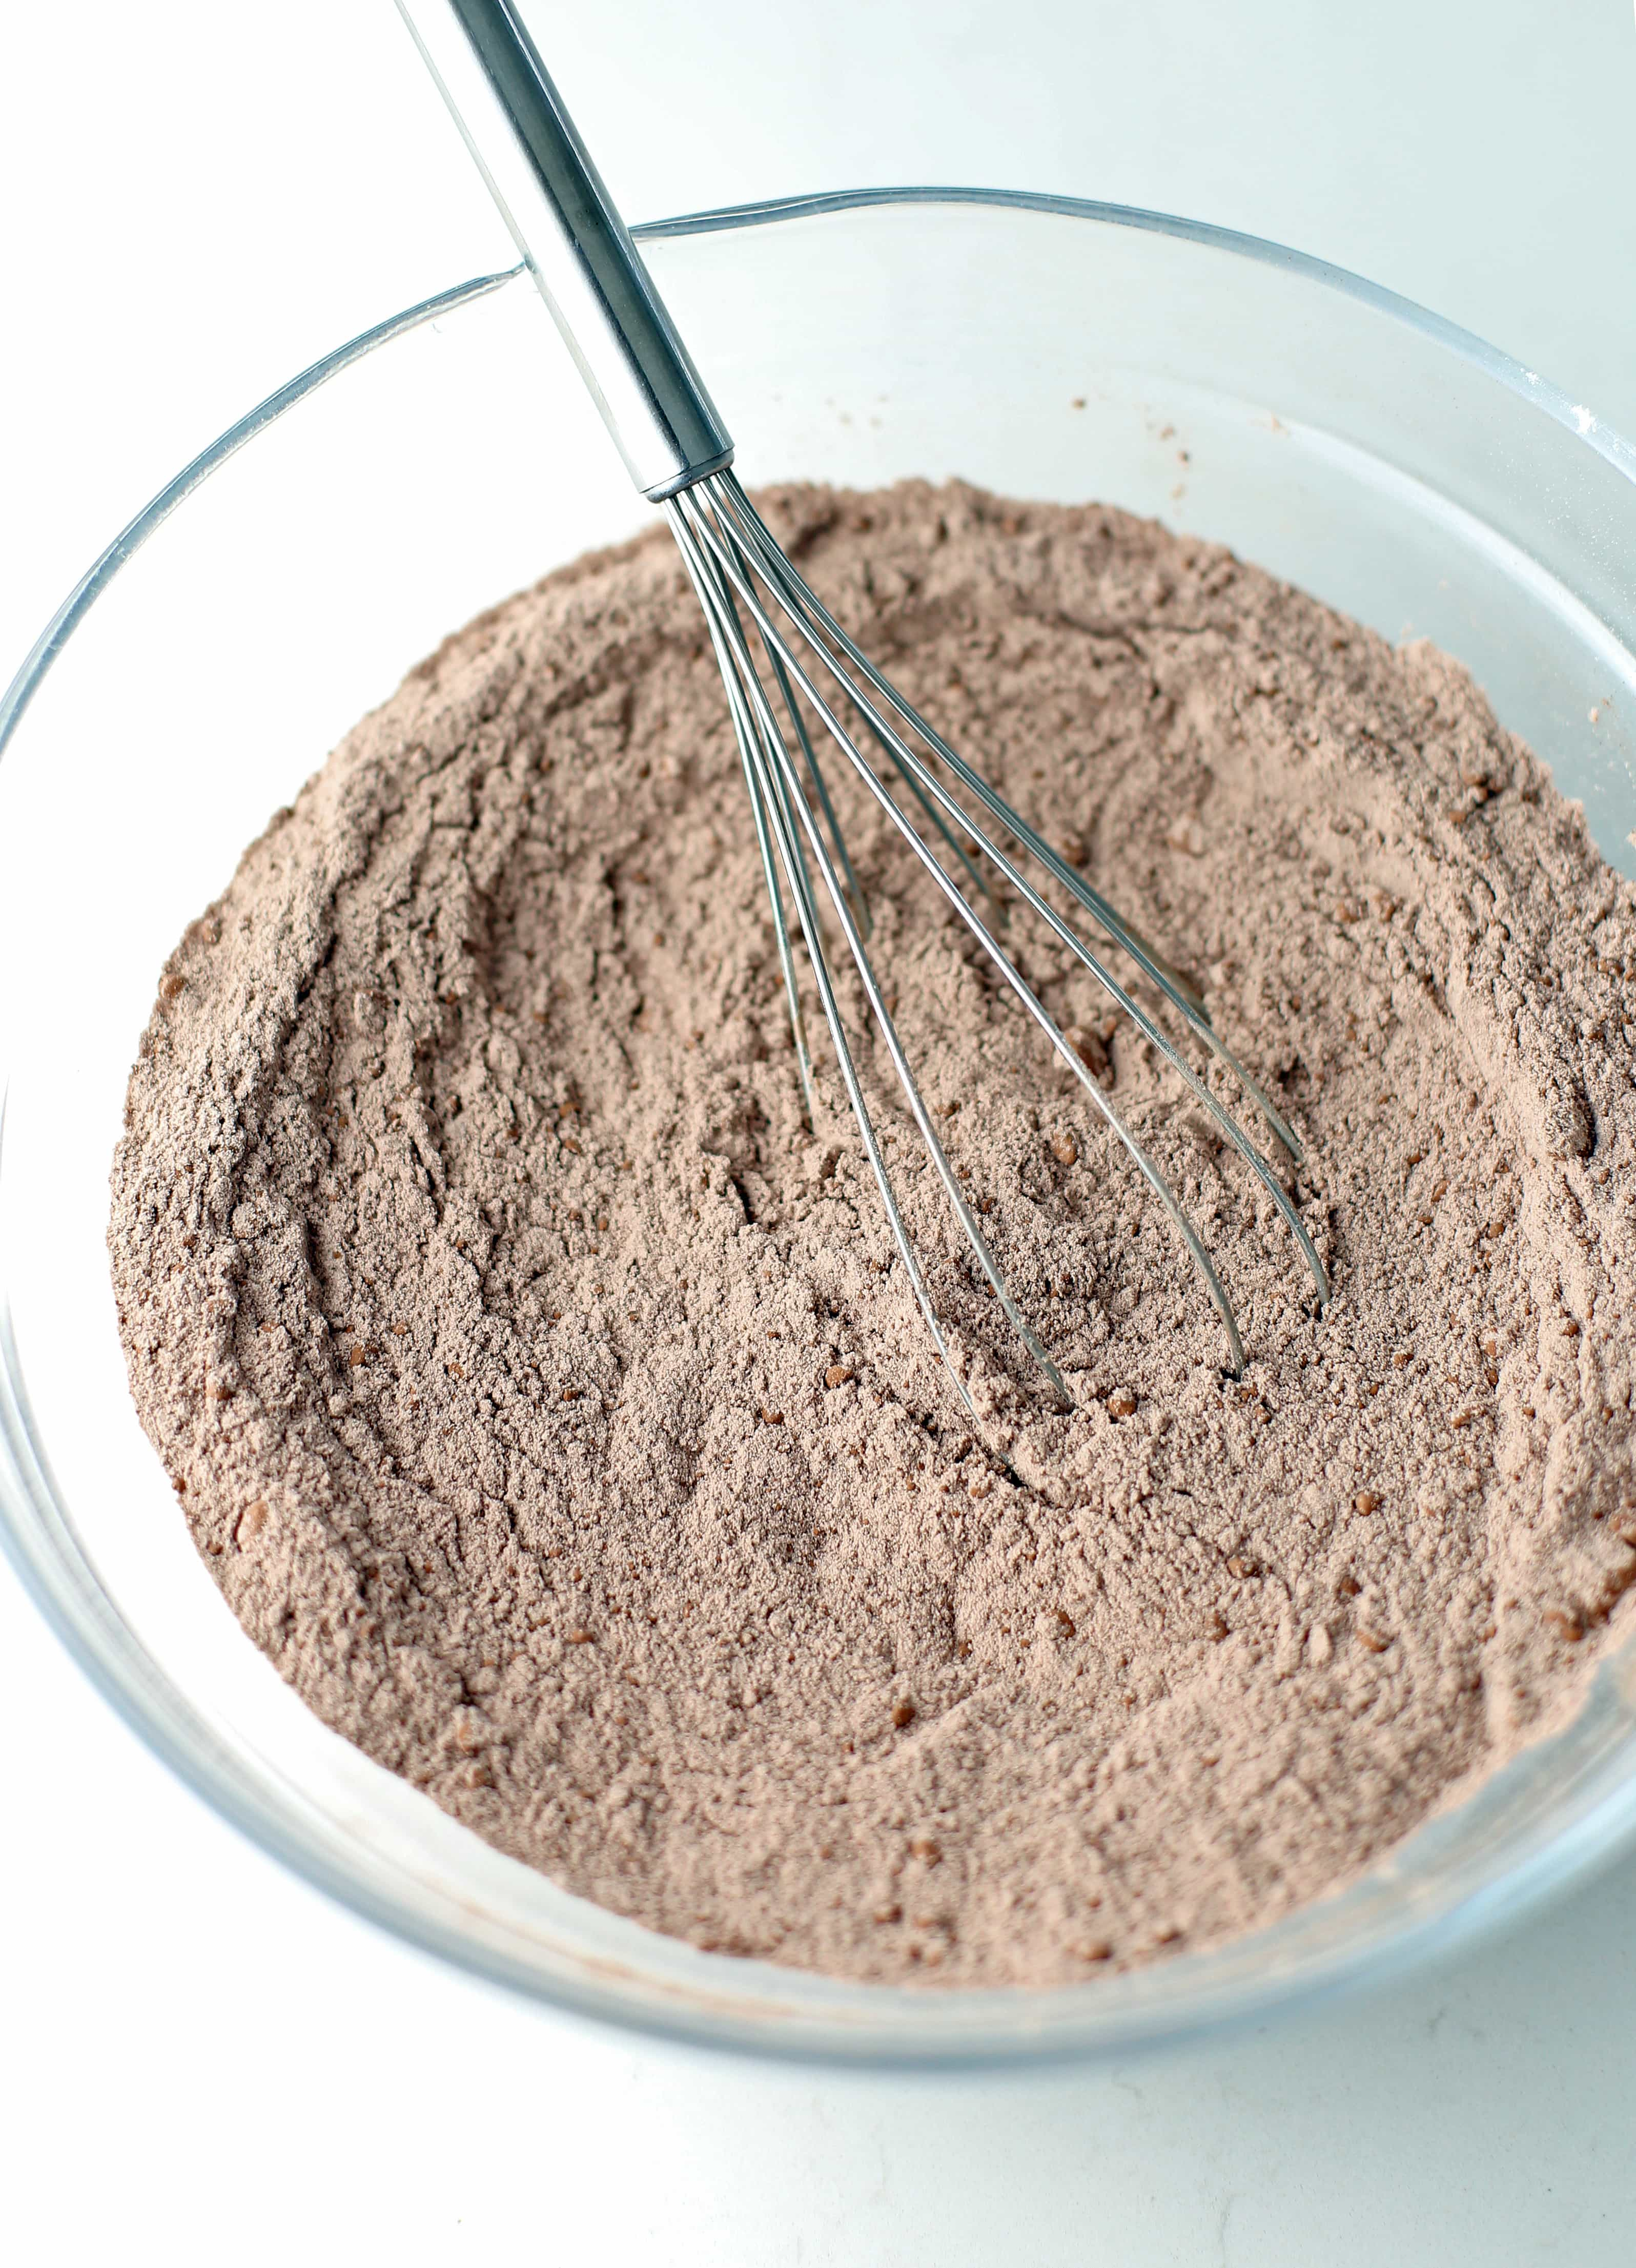 Dry baking ingredients including cocoa power and all-purpose flour mixed in a glass bowl.